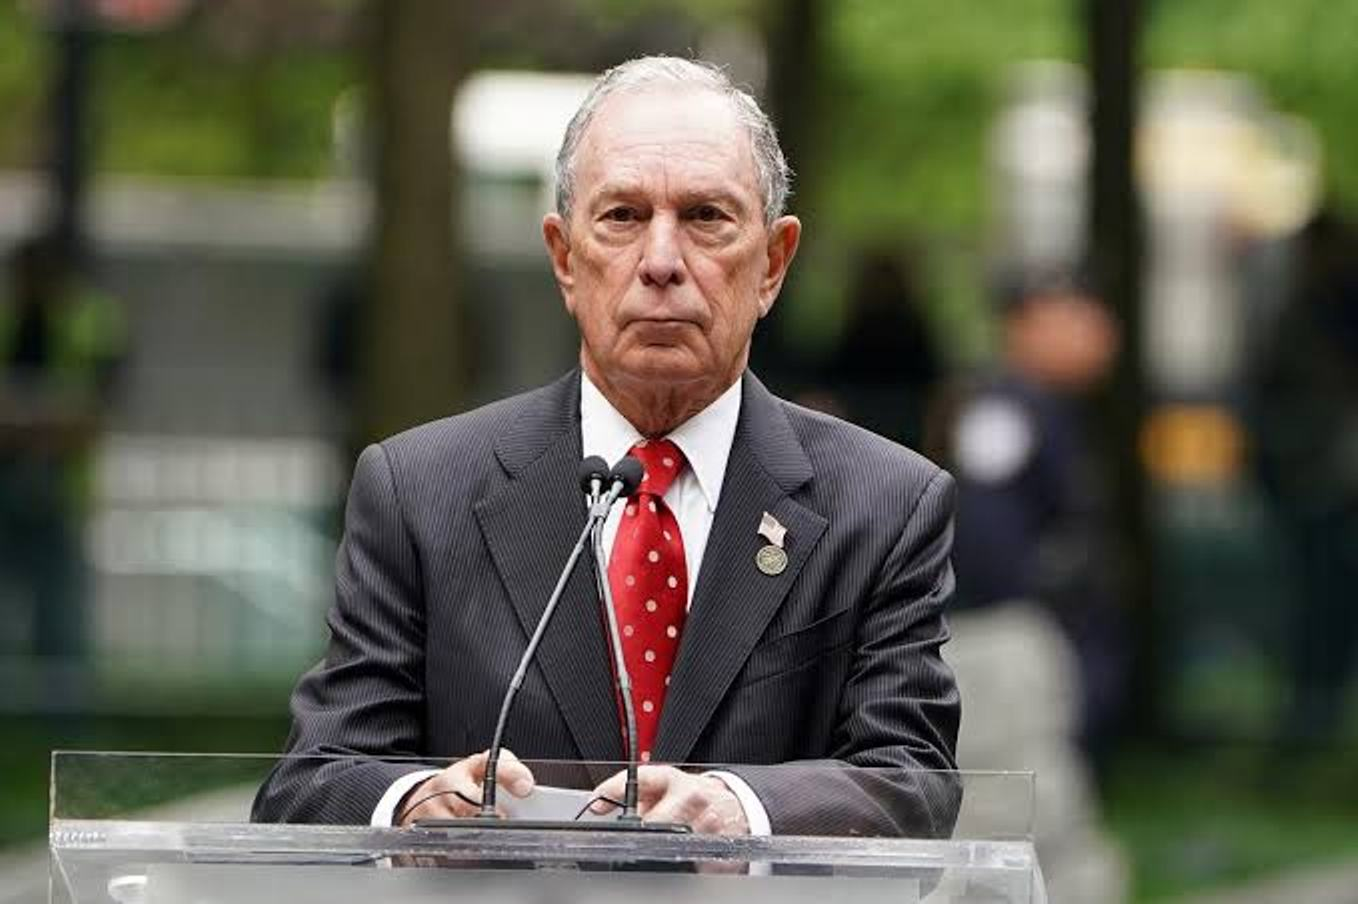 I'm running for president to defeat Trump ― Bloomberg